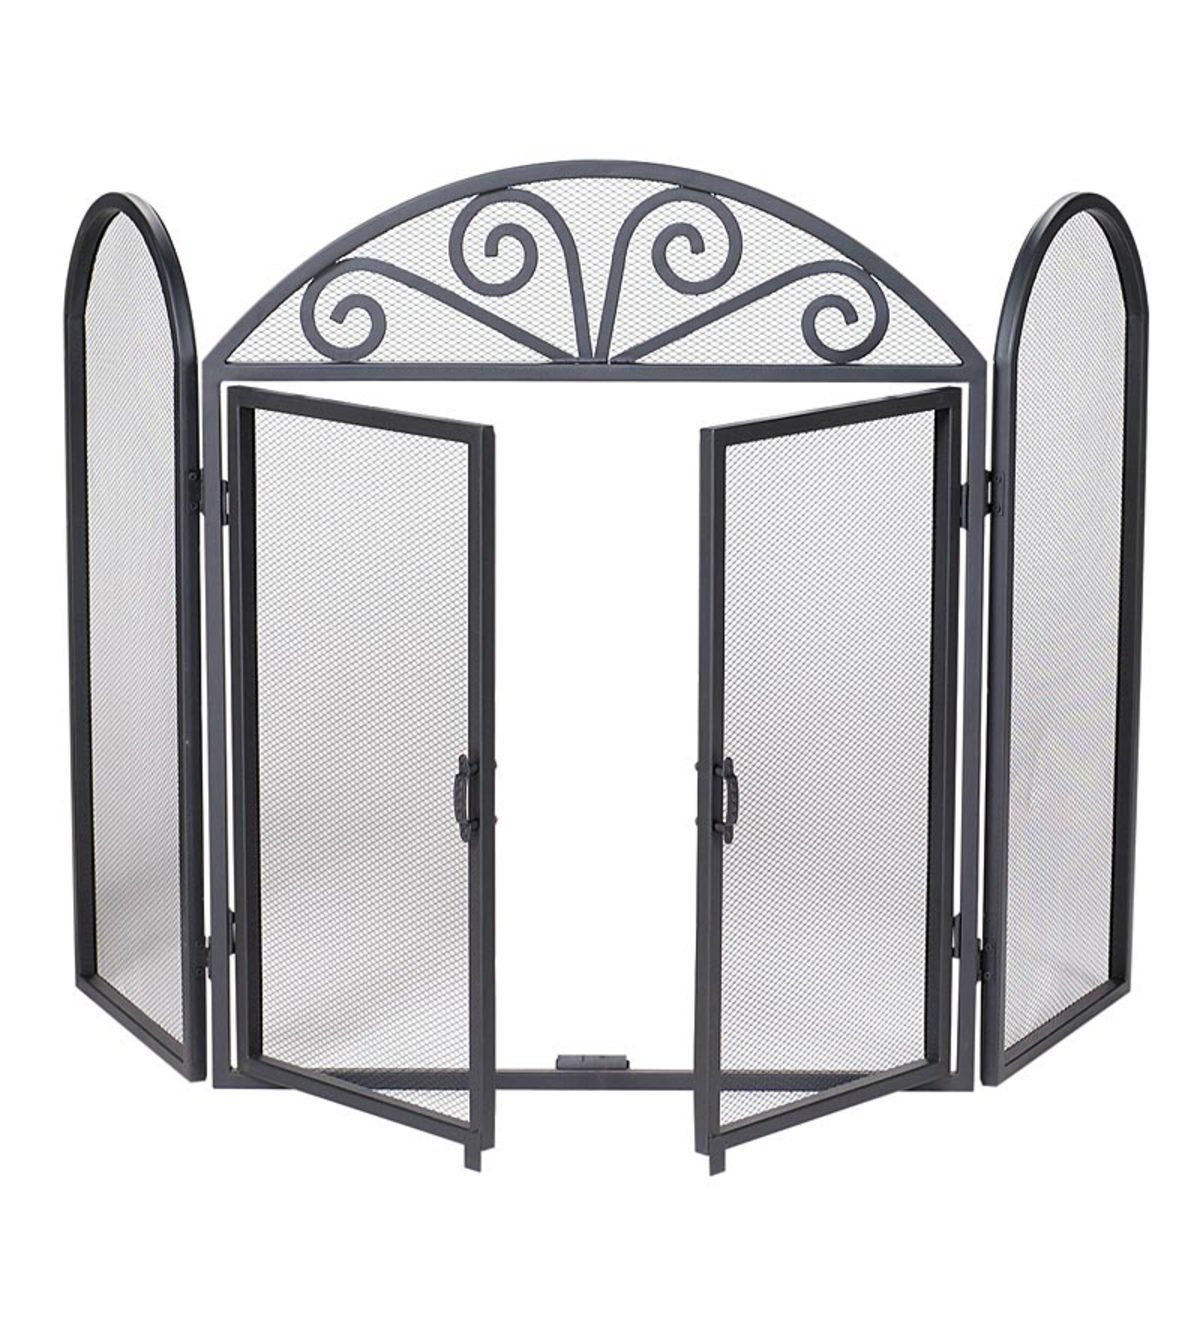 Black Wrought Iron Tri-Folding Fireplace Screen With Doors